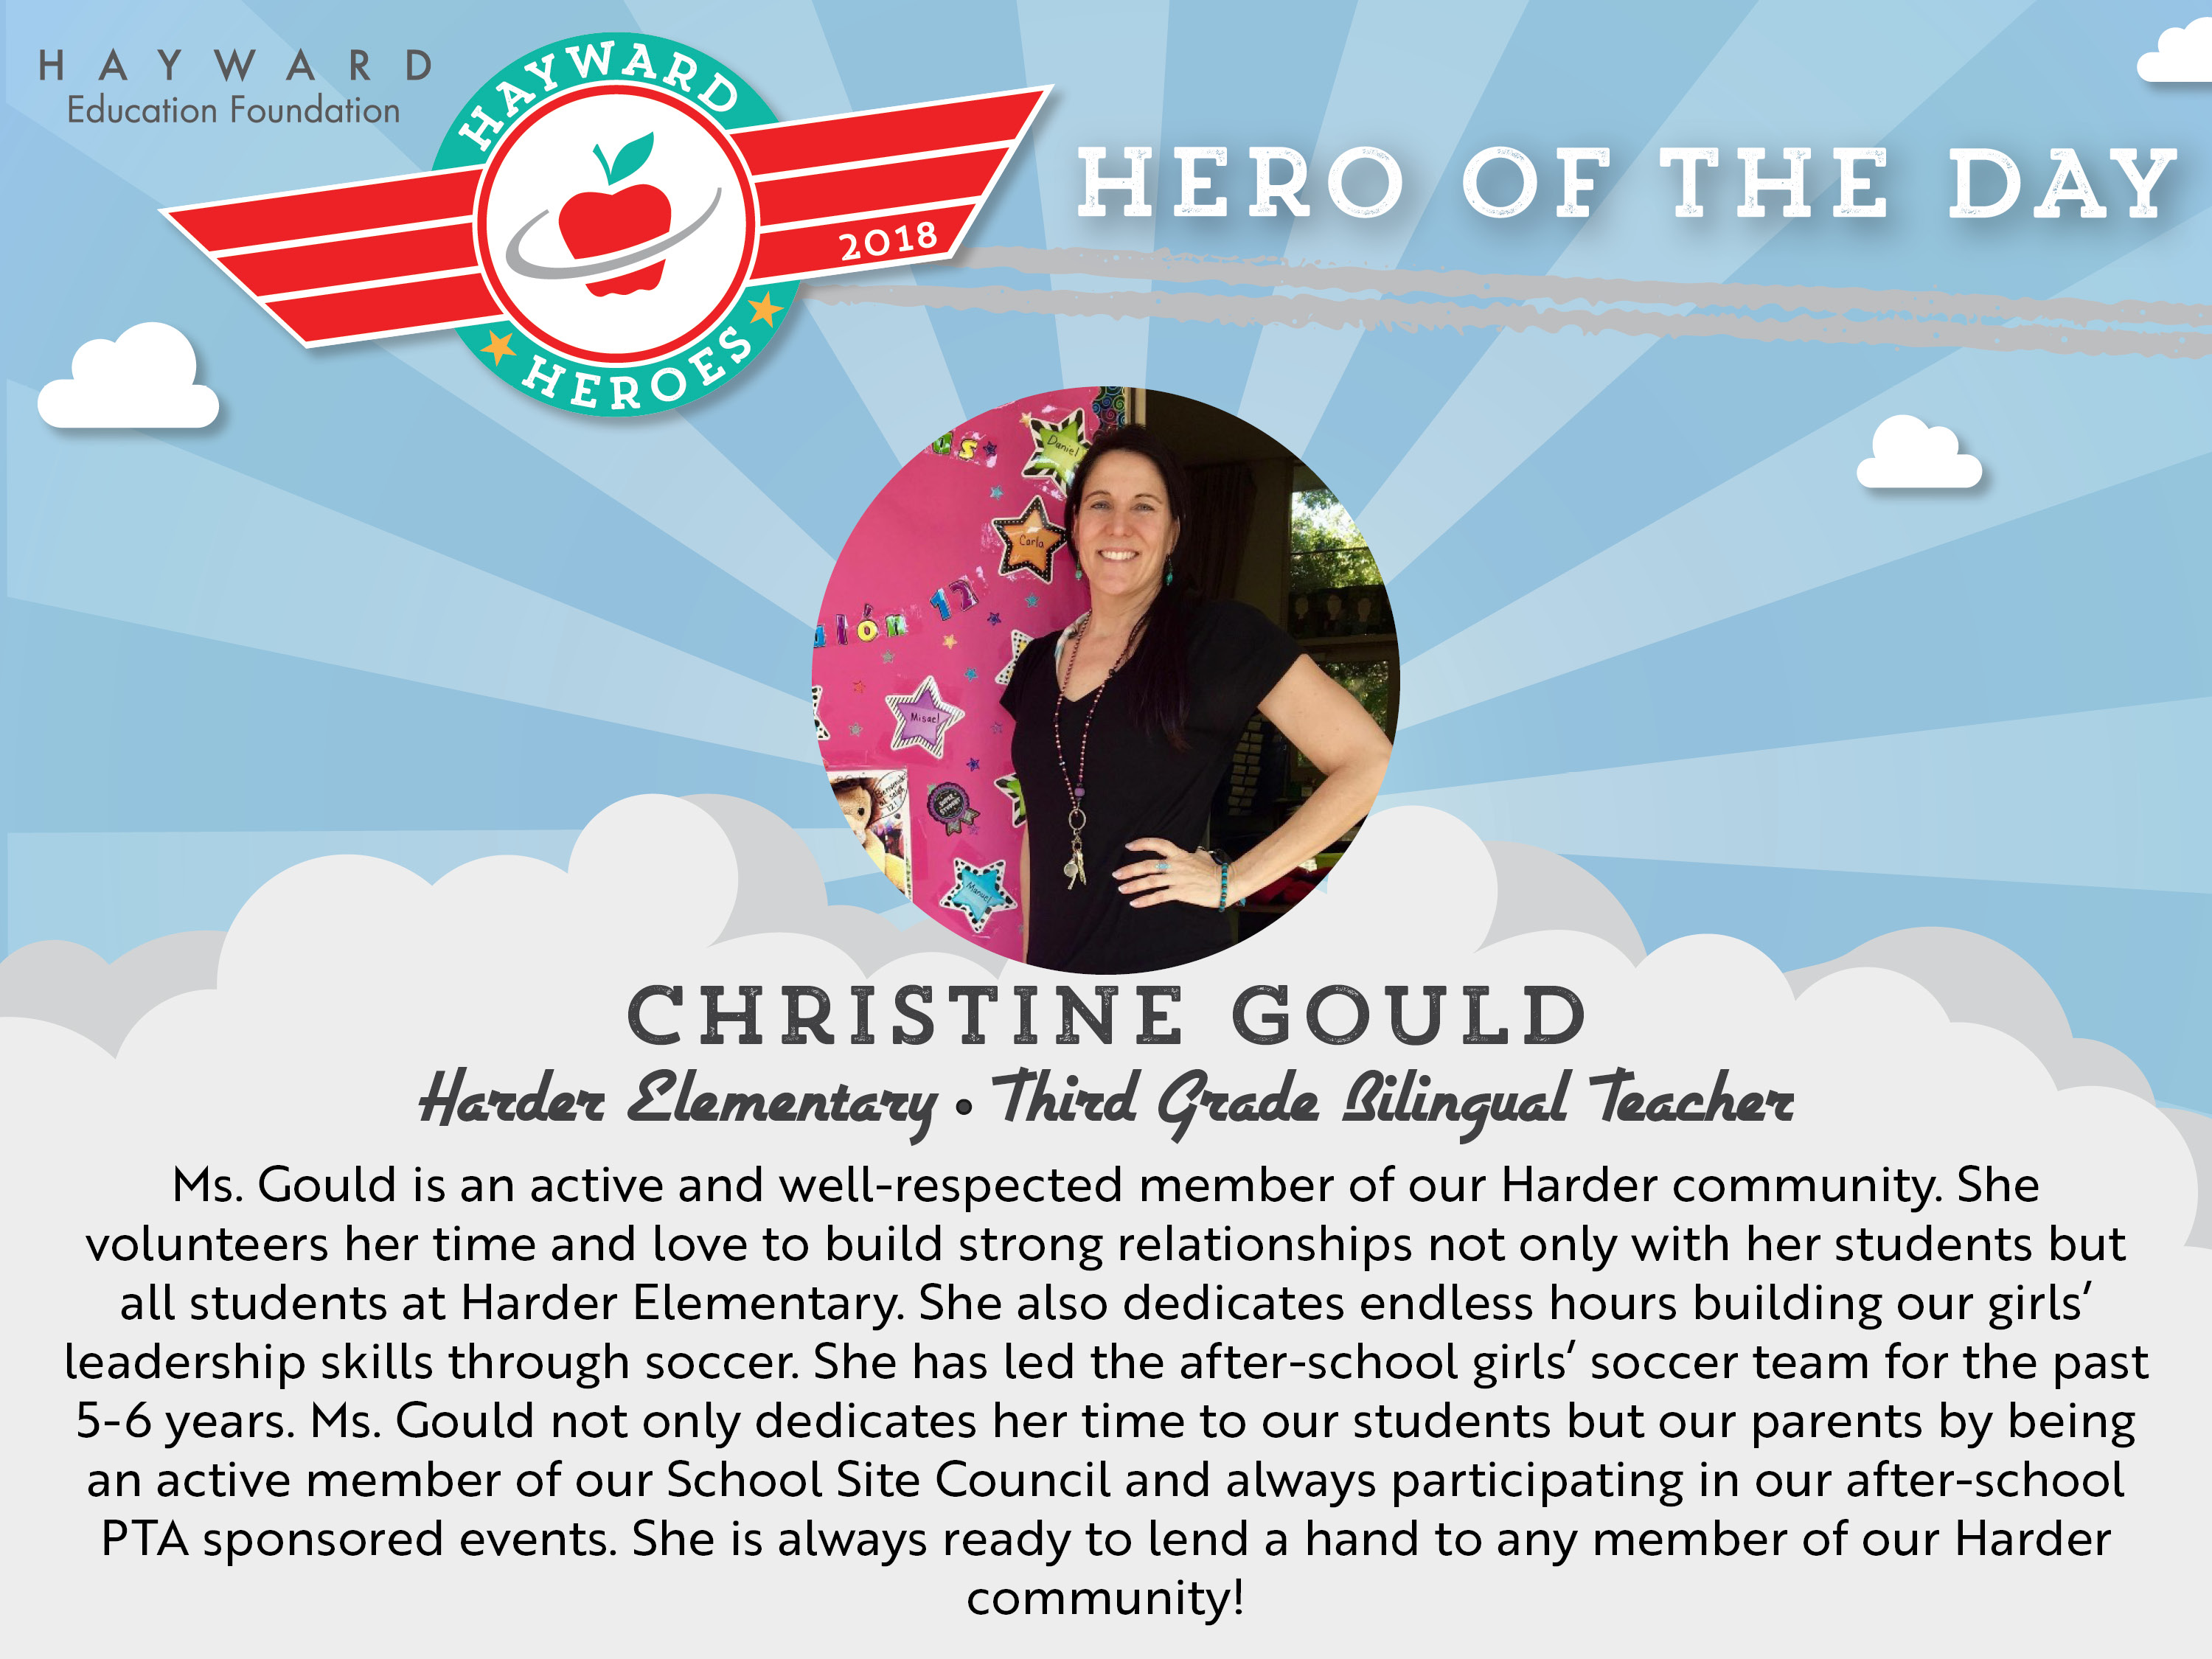 Hero a Day Slides_Gould Christine